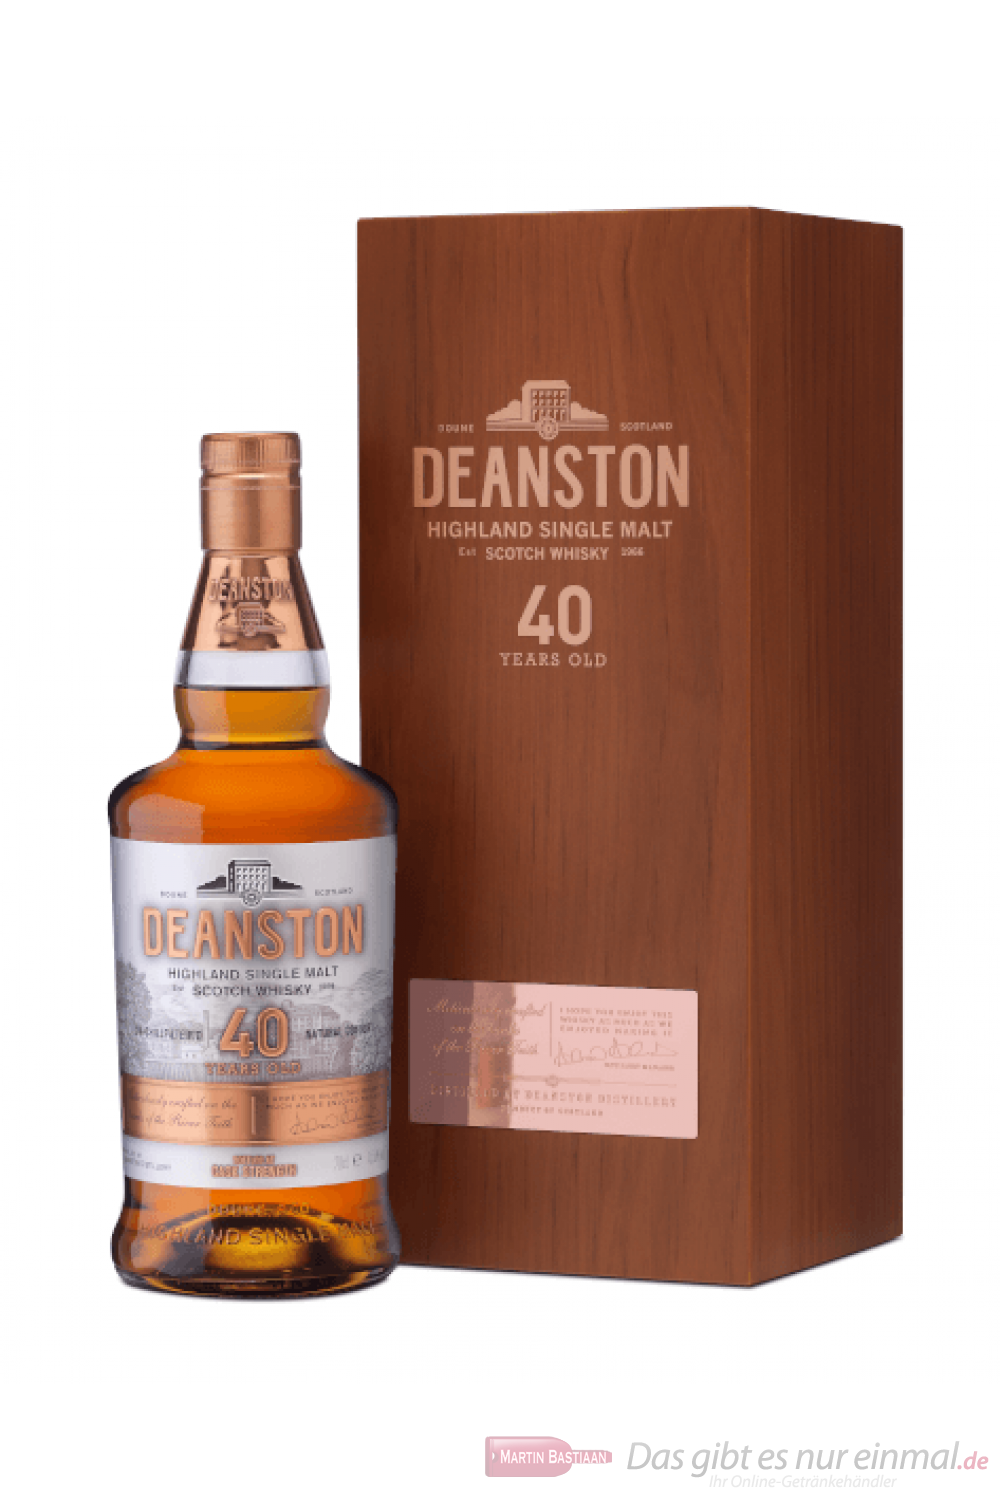 Deanston 40 Years Highland Single Malt Scotch Whisky 0,7l